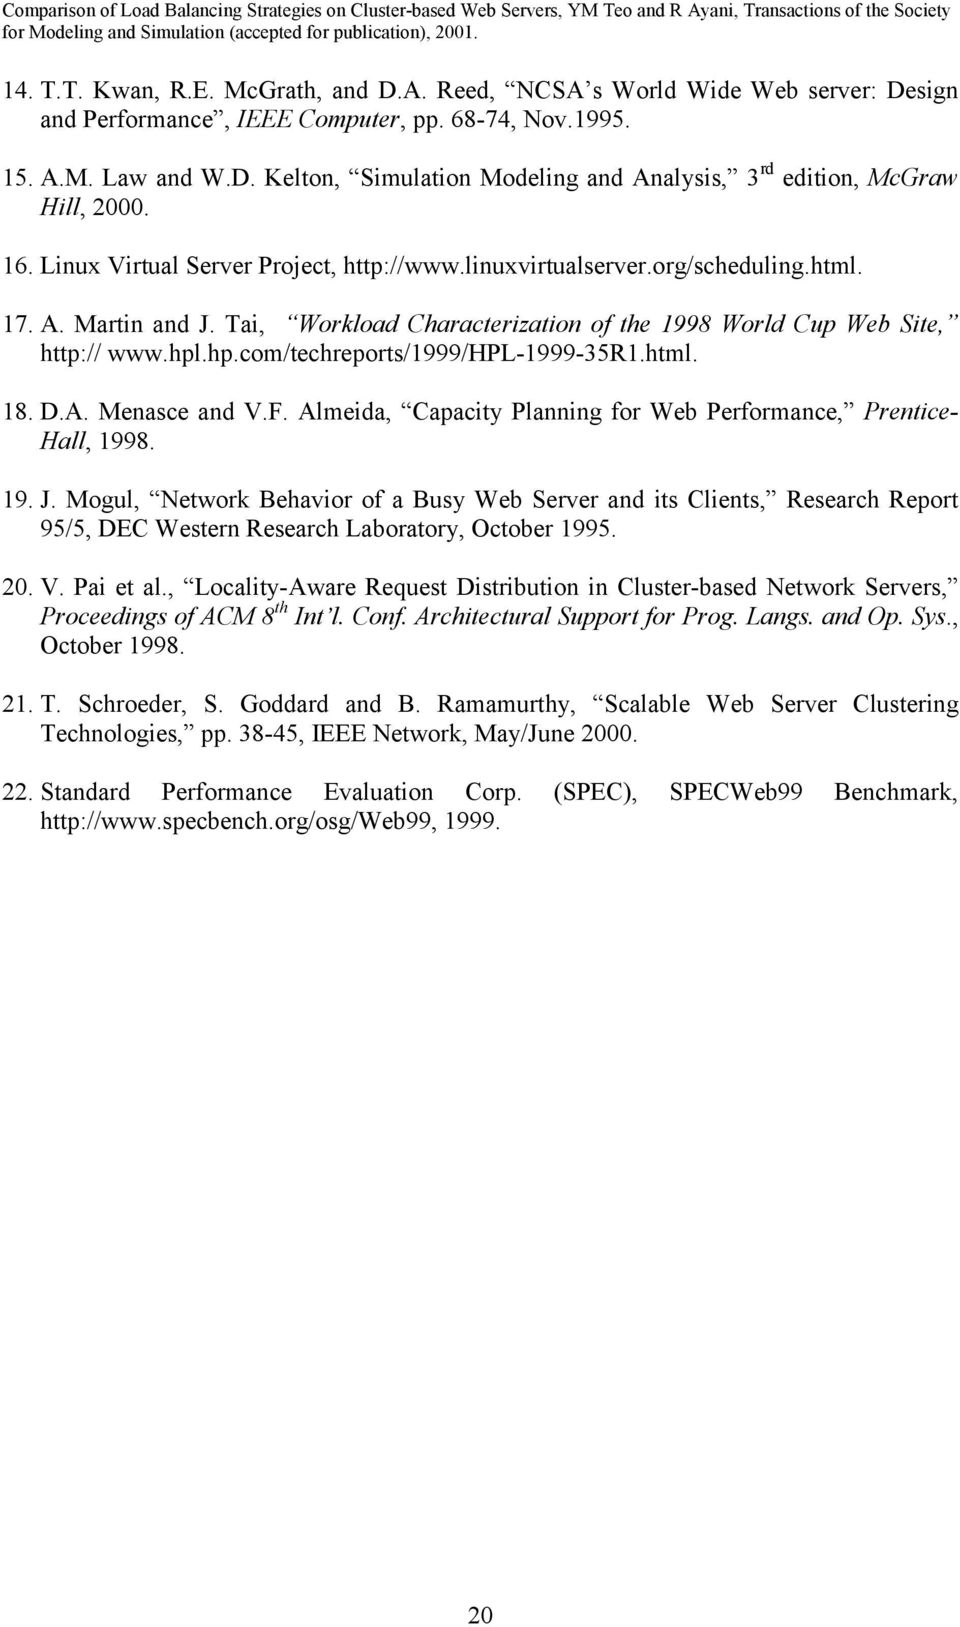 .hp.com/techreports/1999/hpl-1999-35r1.html. 18. D.A. Menasce and V.F. Almeida, Capacity Planning for Web Performance, Prentice- Hall, 1998. 19. J.